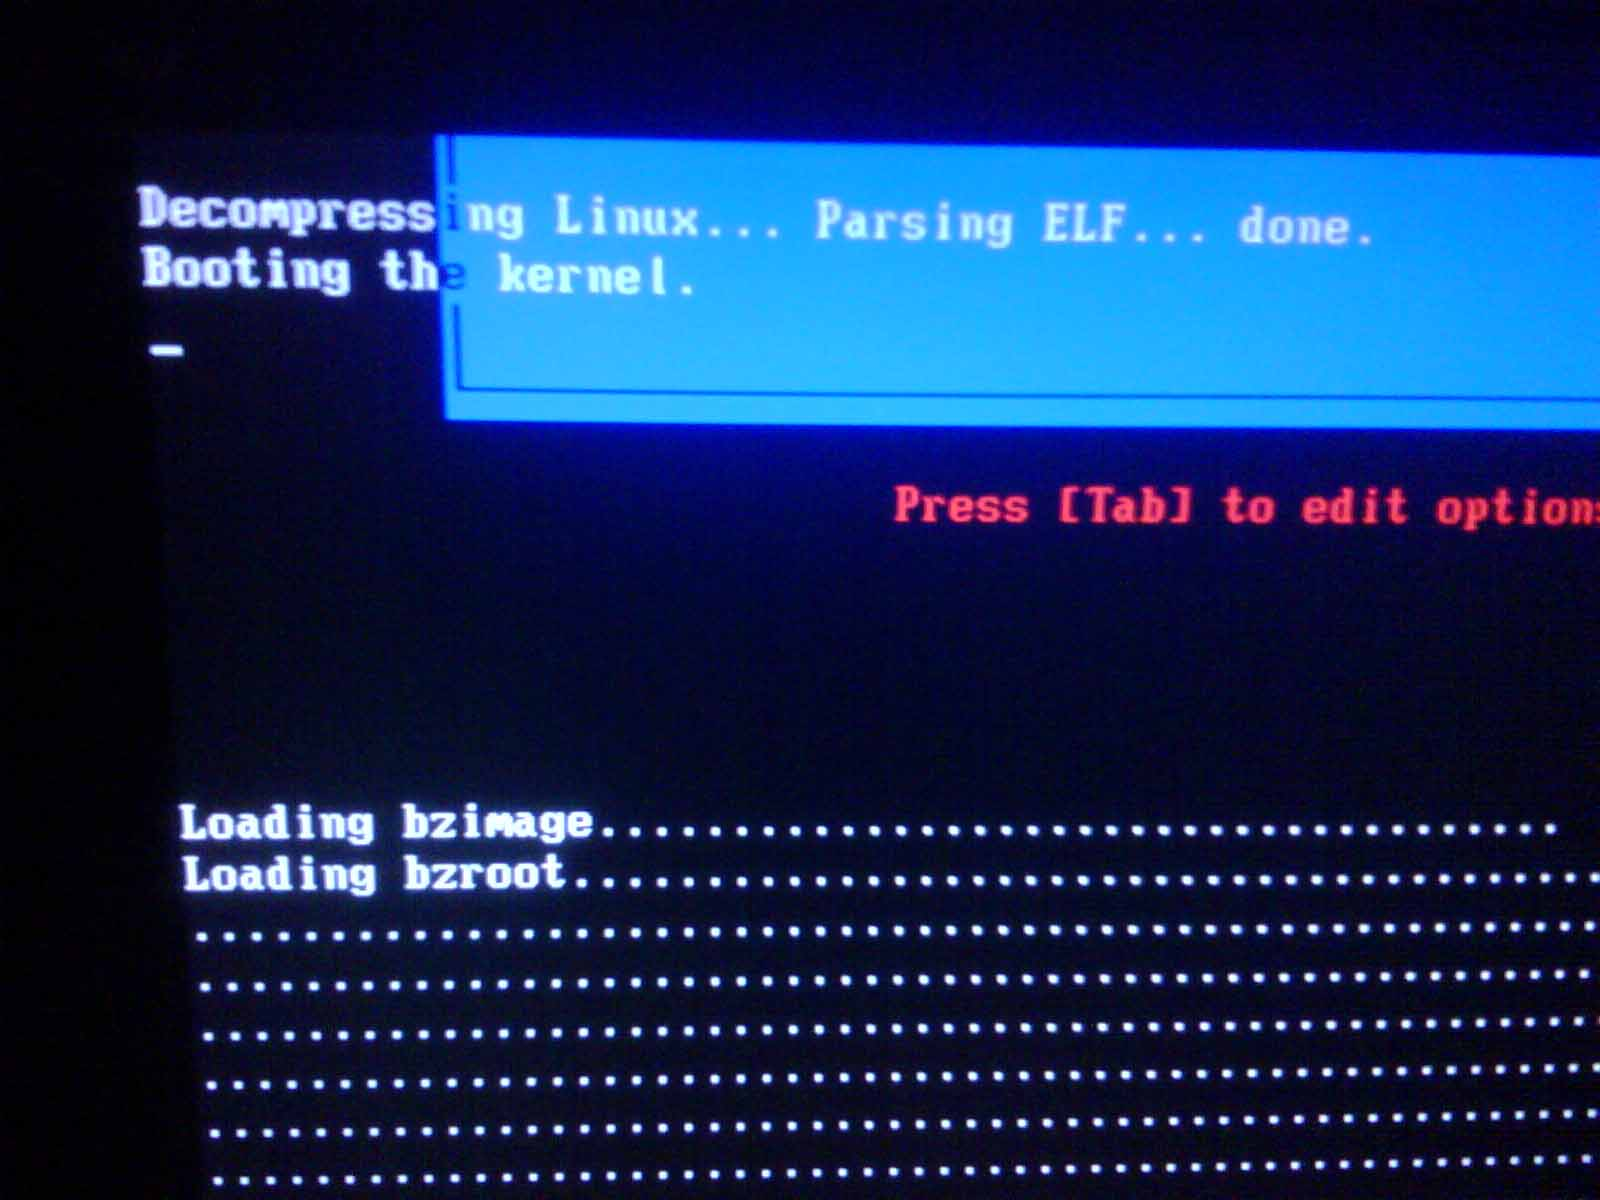 Not able to boot, requesting assistance - General Support